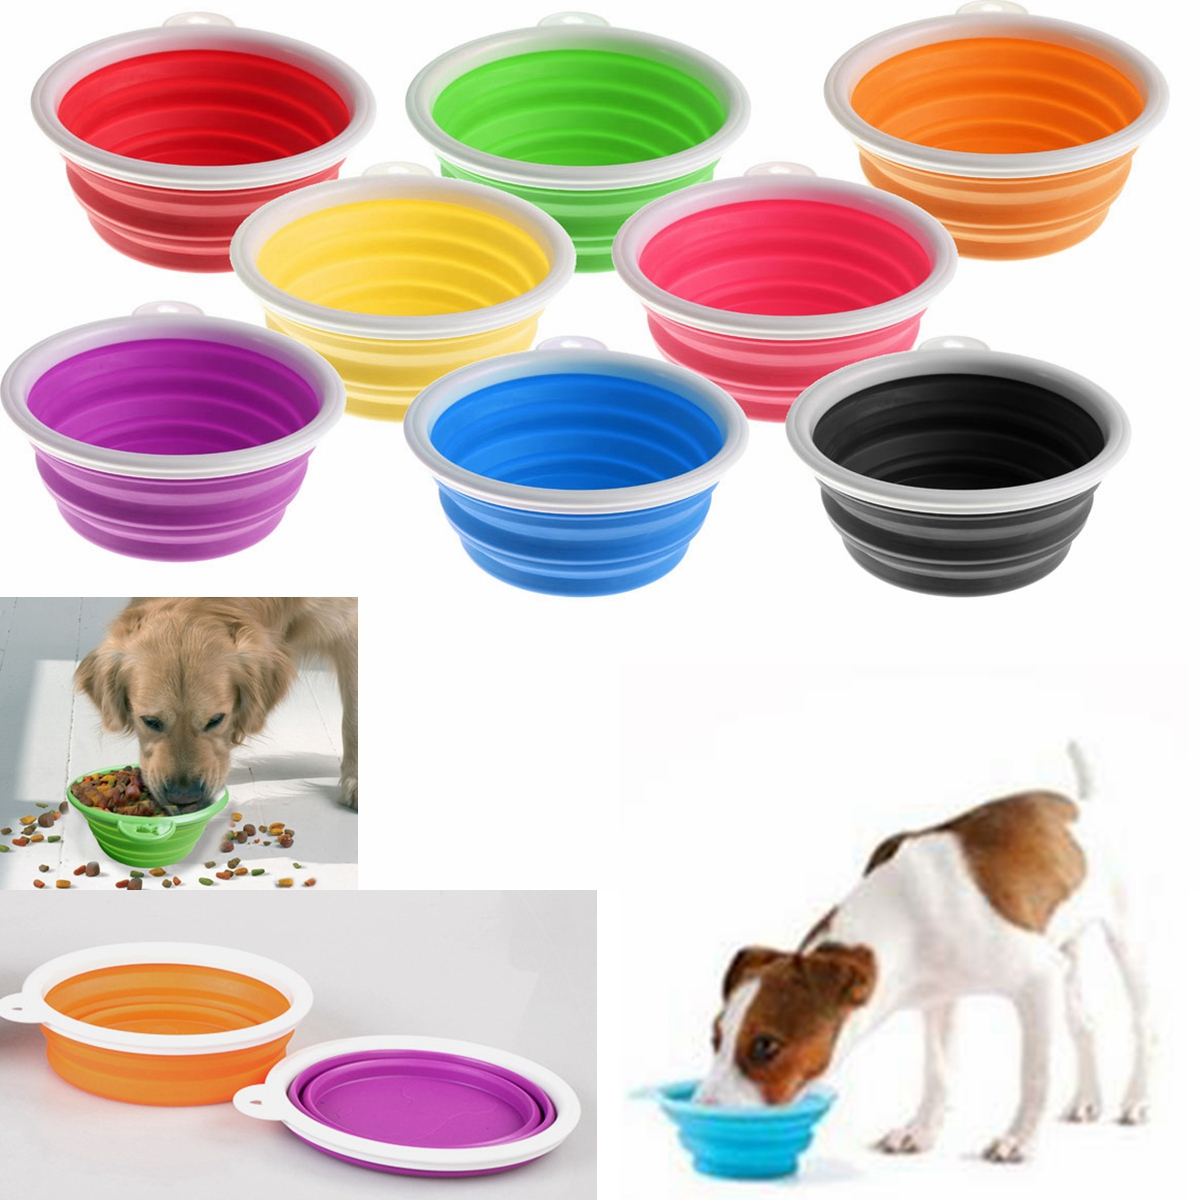 Portable Dog Pet Travel Collapsible Food Water Bowls Pets: Collapsible Silicone Pet Bowl, Expandable Cup Dish For Pet